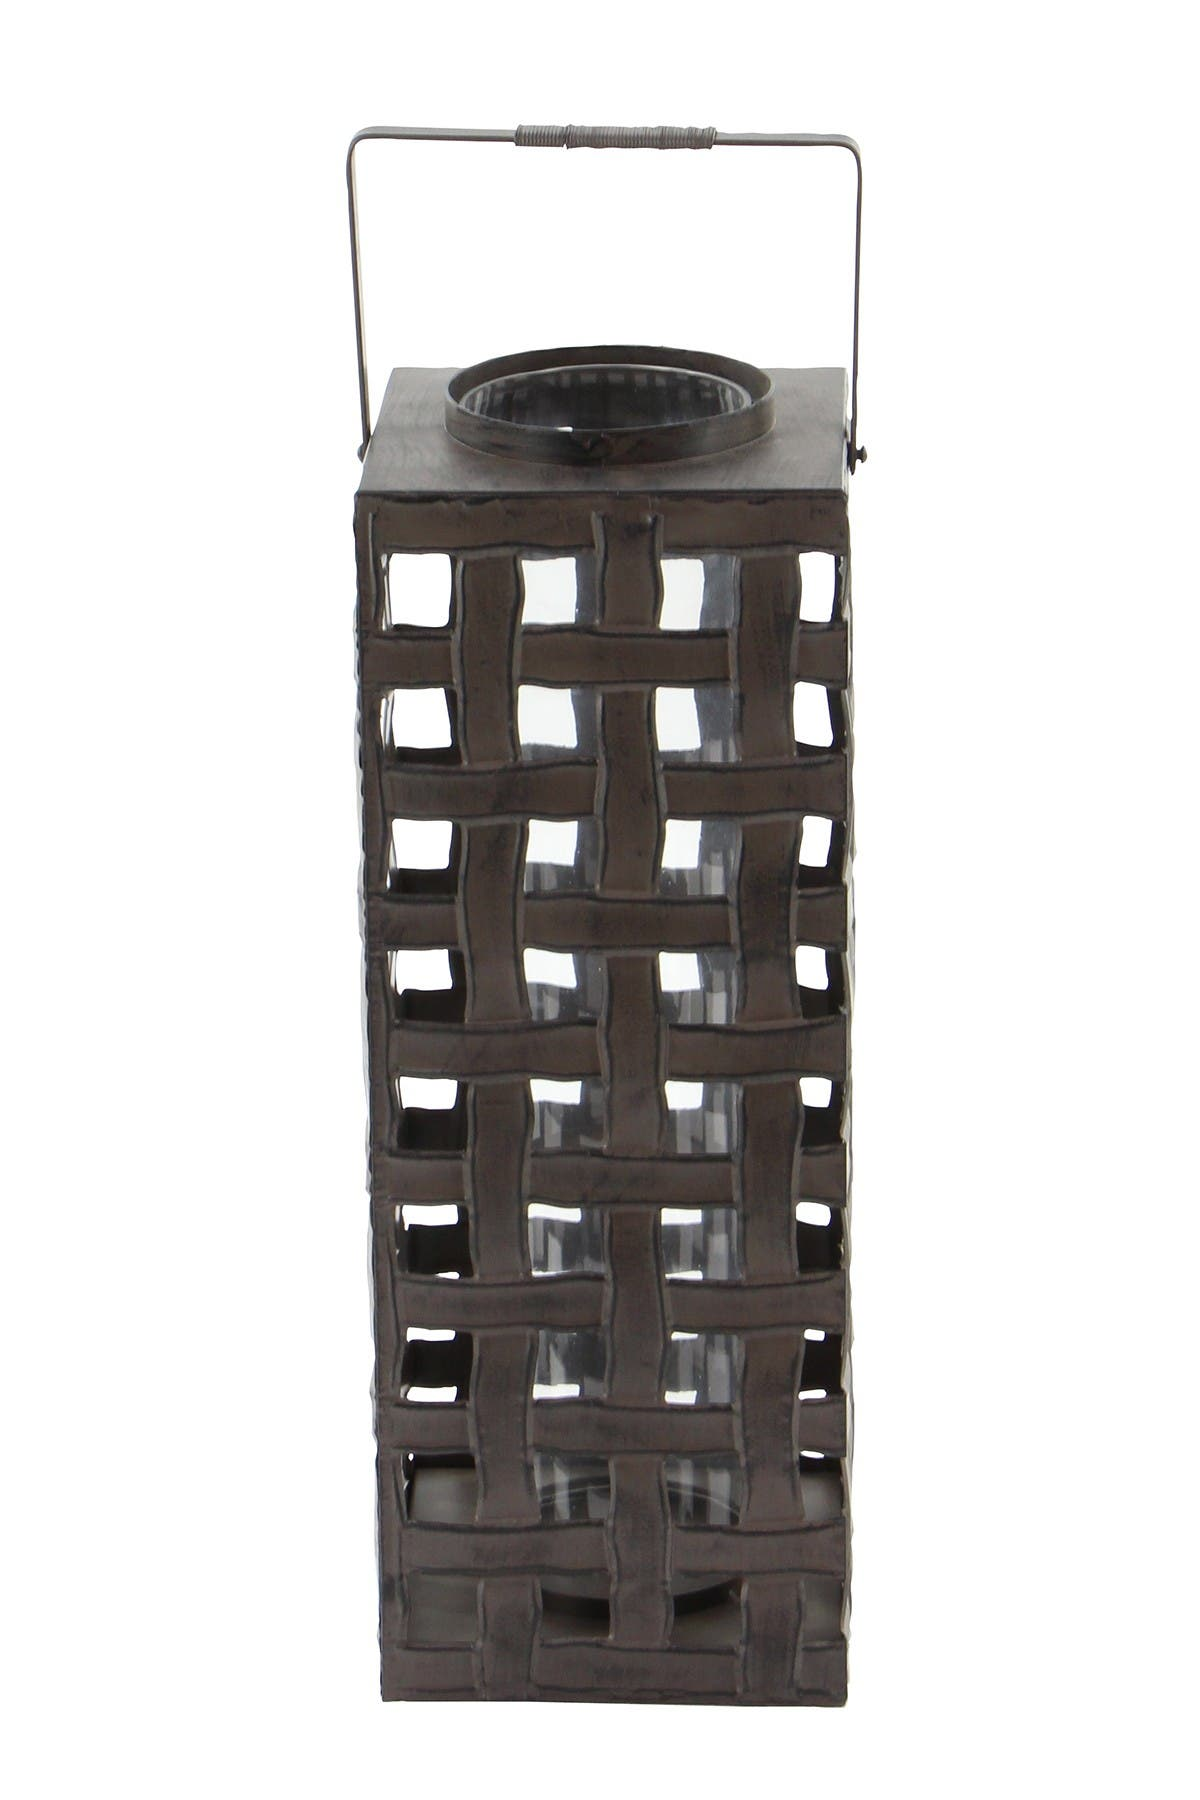 Image of Willow Row Black Iron Industrial Candle Holder Lantern